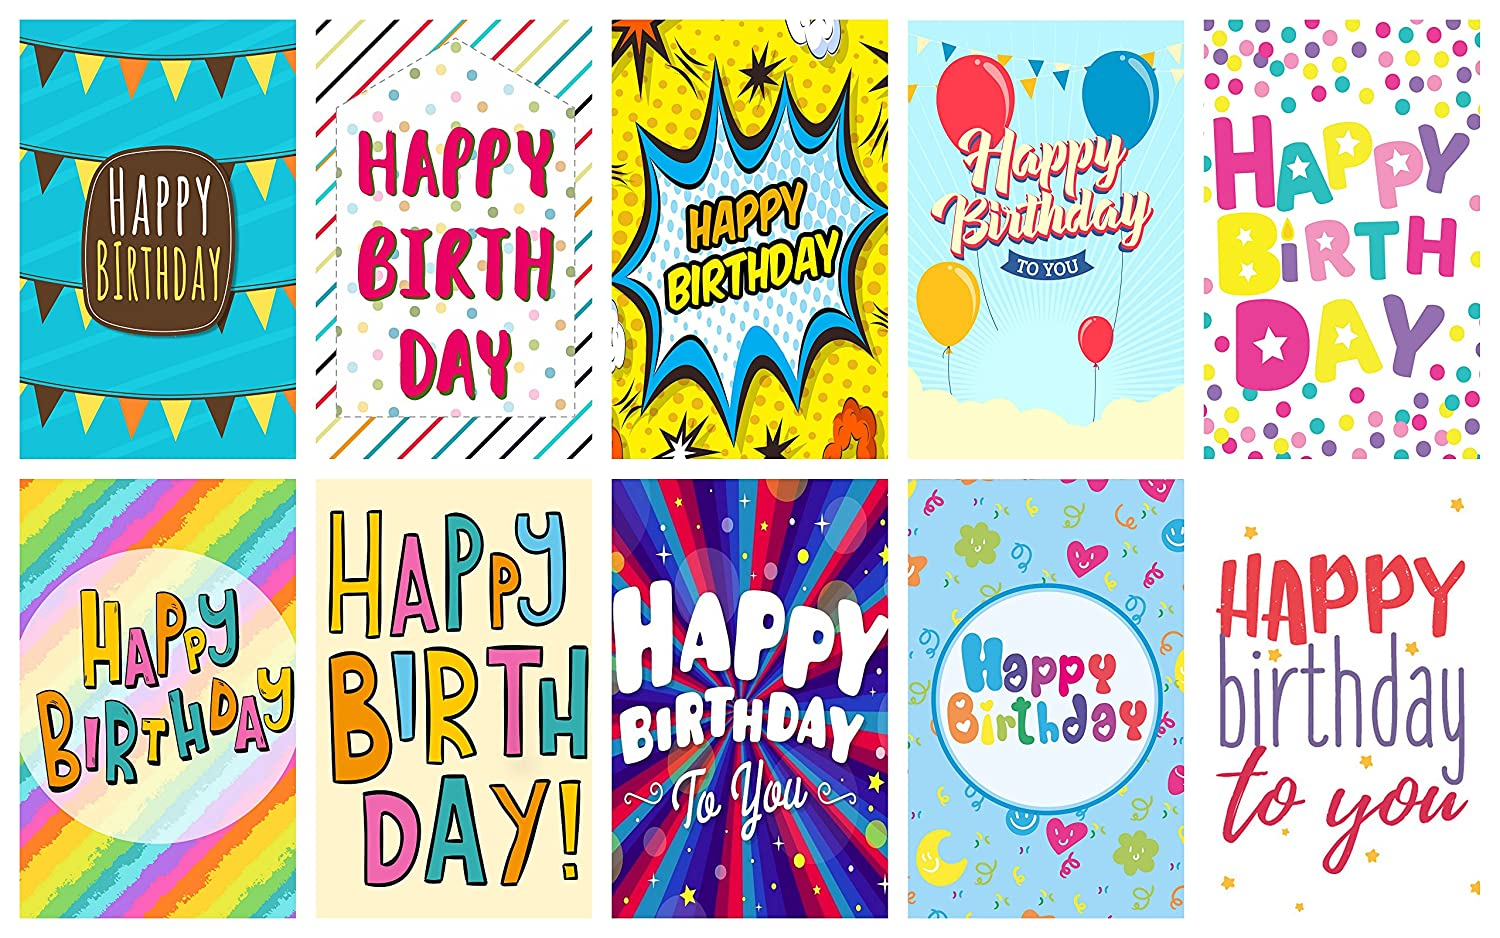 20 Words Design Birthday Cards Envelopes By Greetingles 10 Designs Made In UK